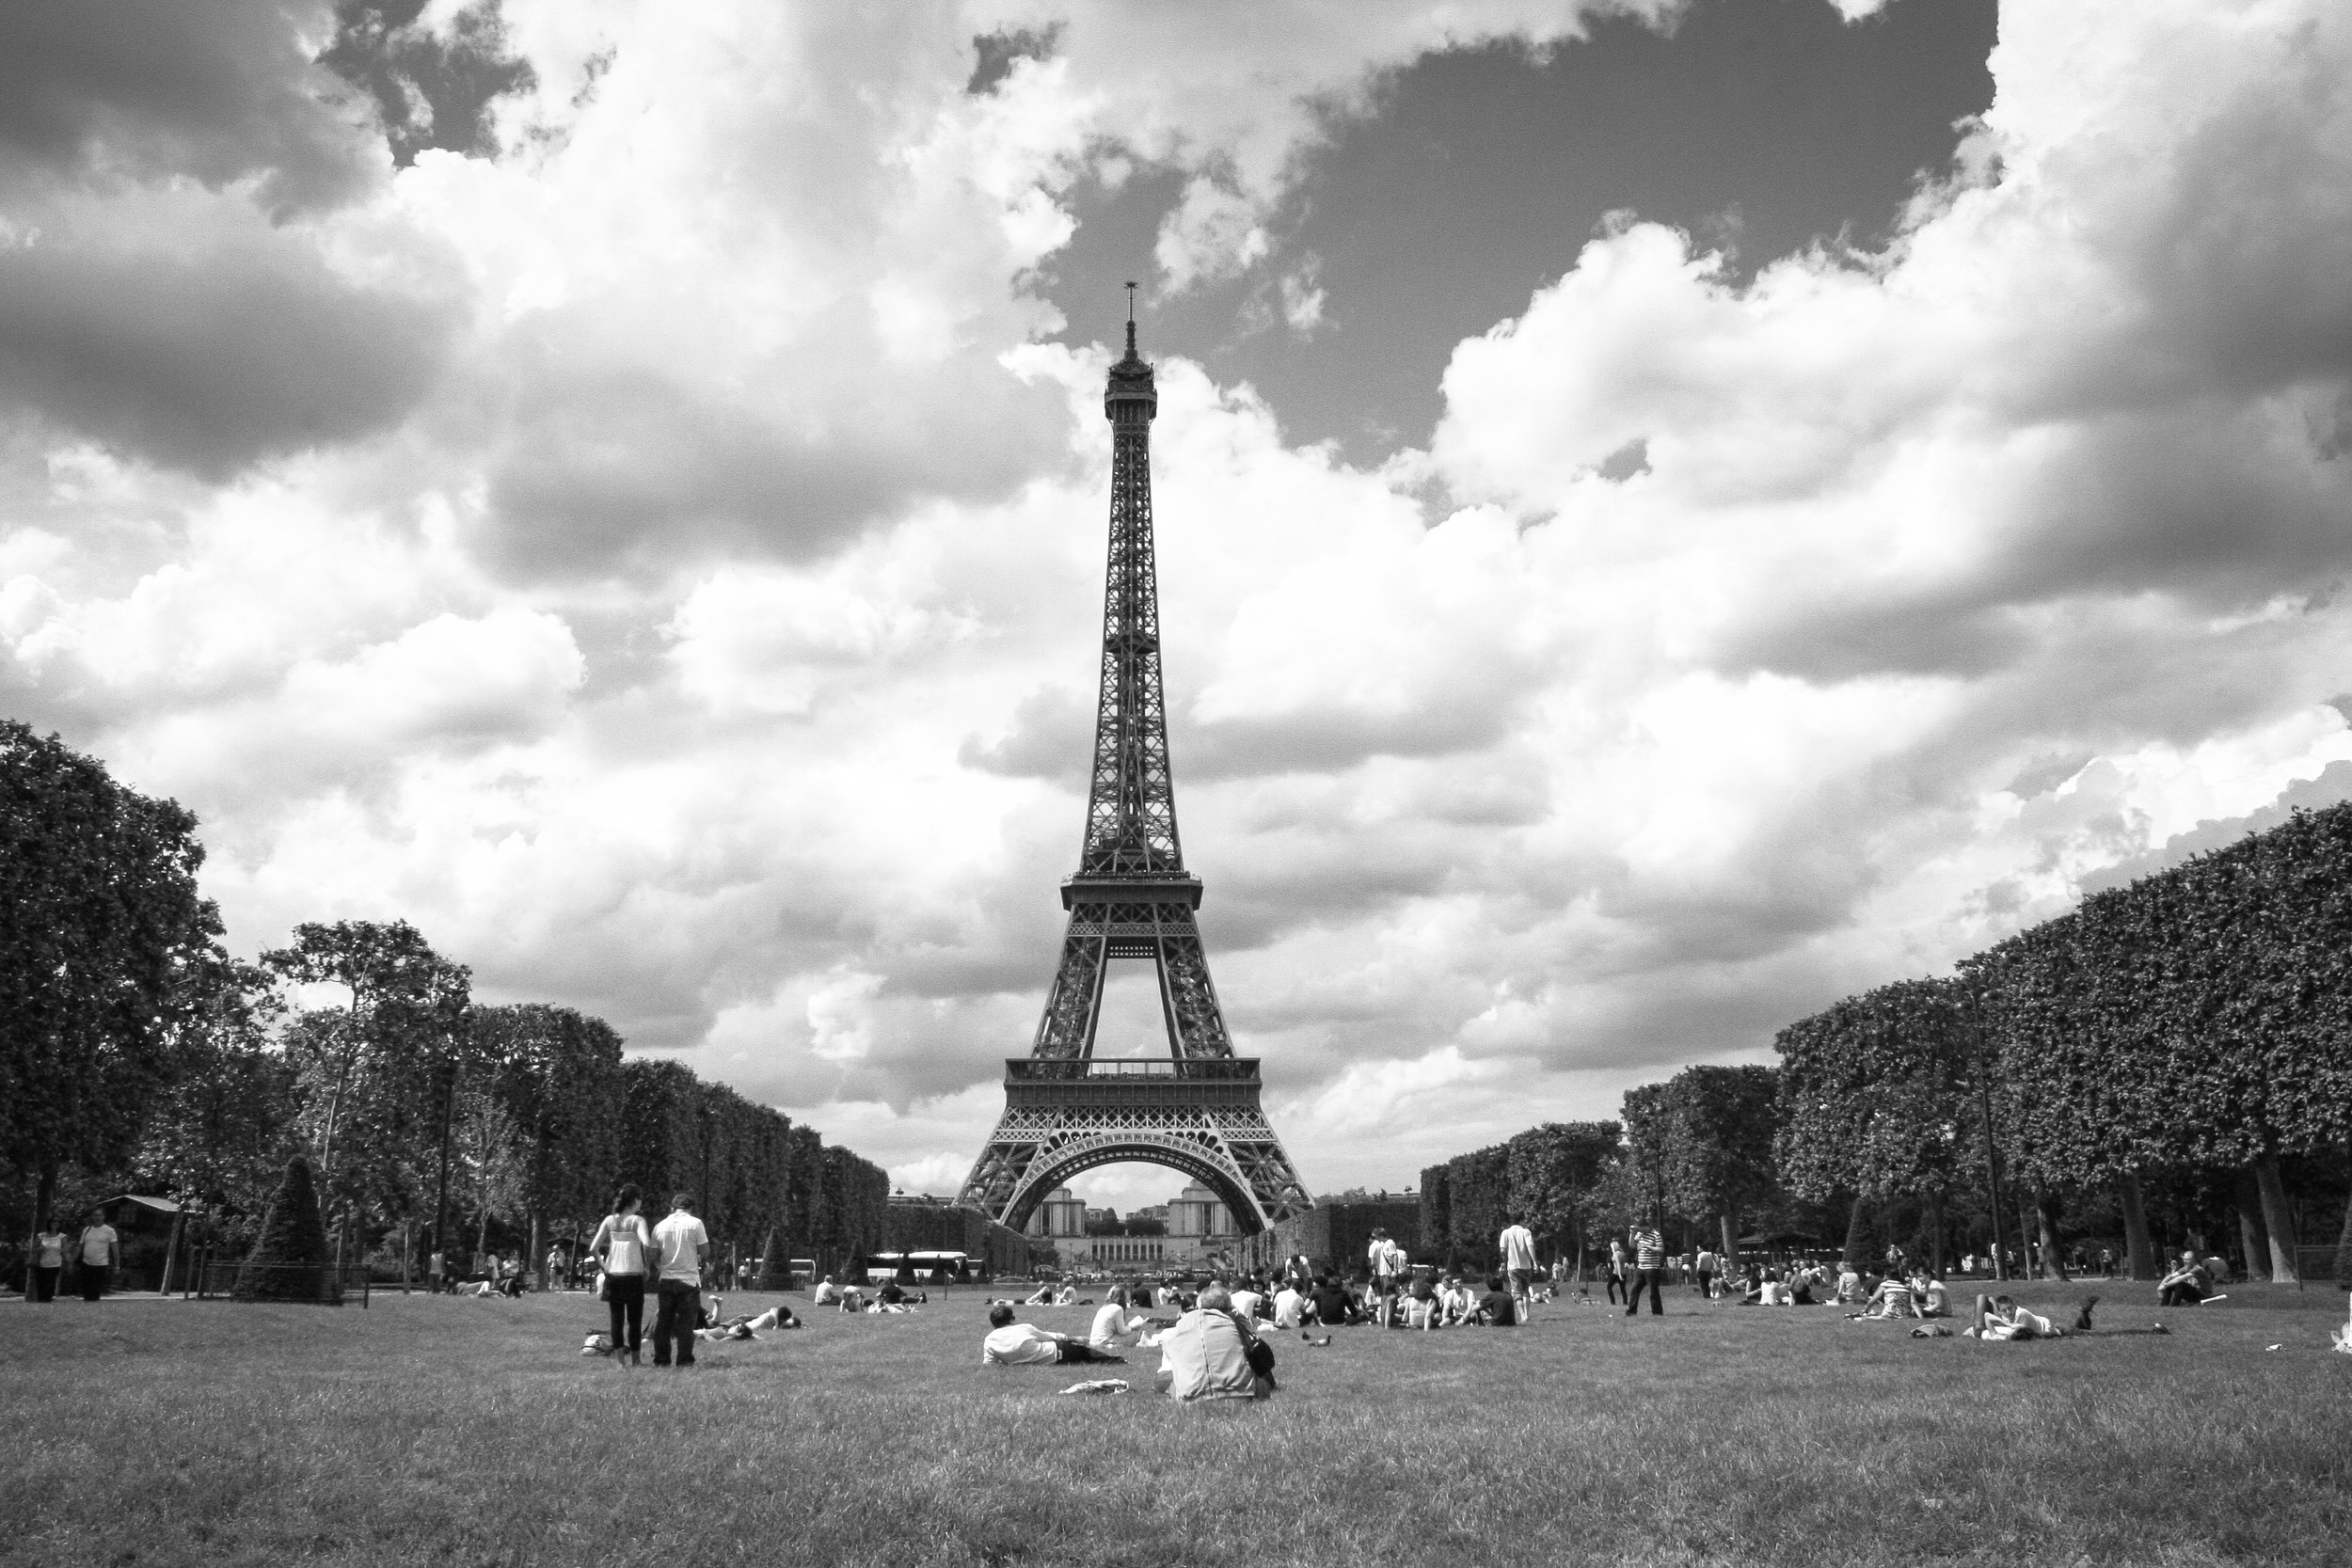 Eiffel Tower, Paris, 2008. I shot this with my very first DSLR during my college study abroad trip. I didn't have a complete understanding of exposure yet, but I was inspired by Paris and developed an eye for composition.